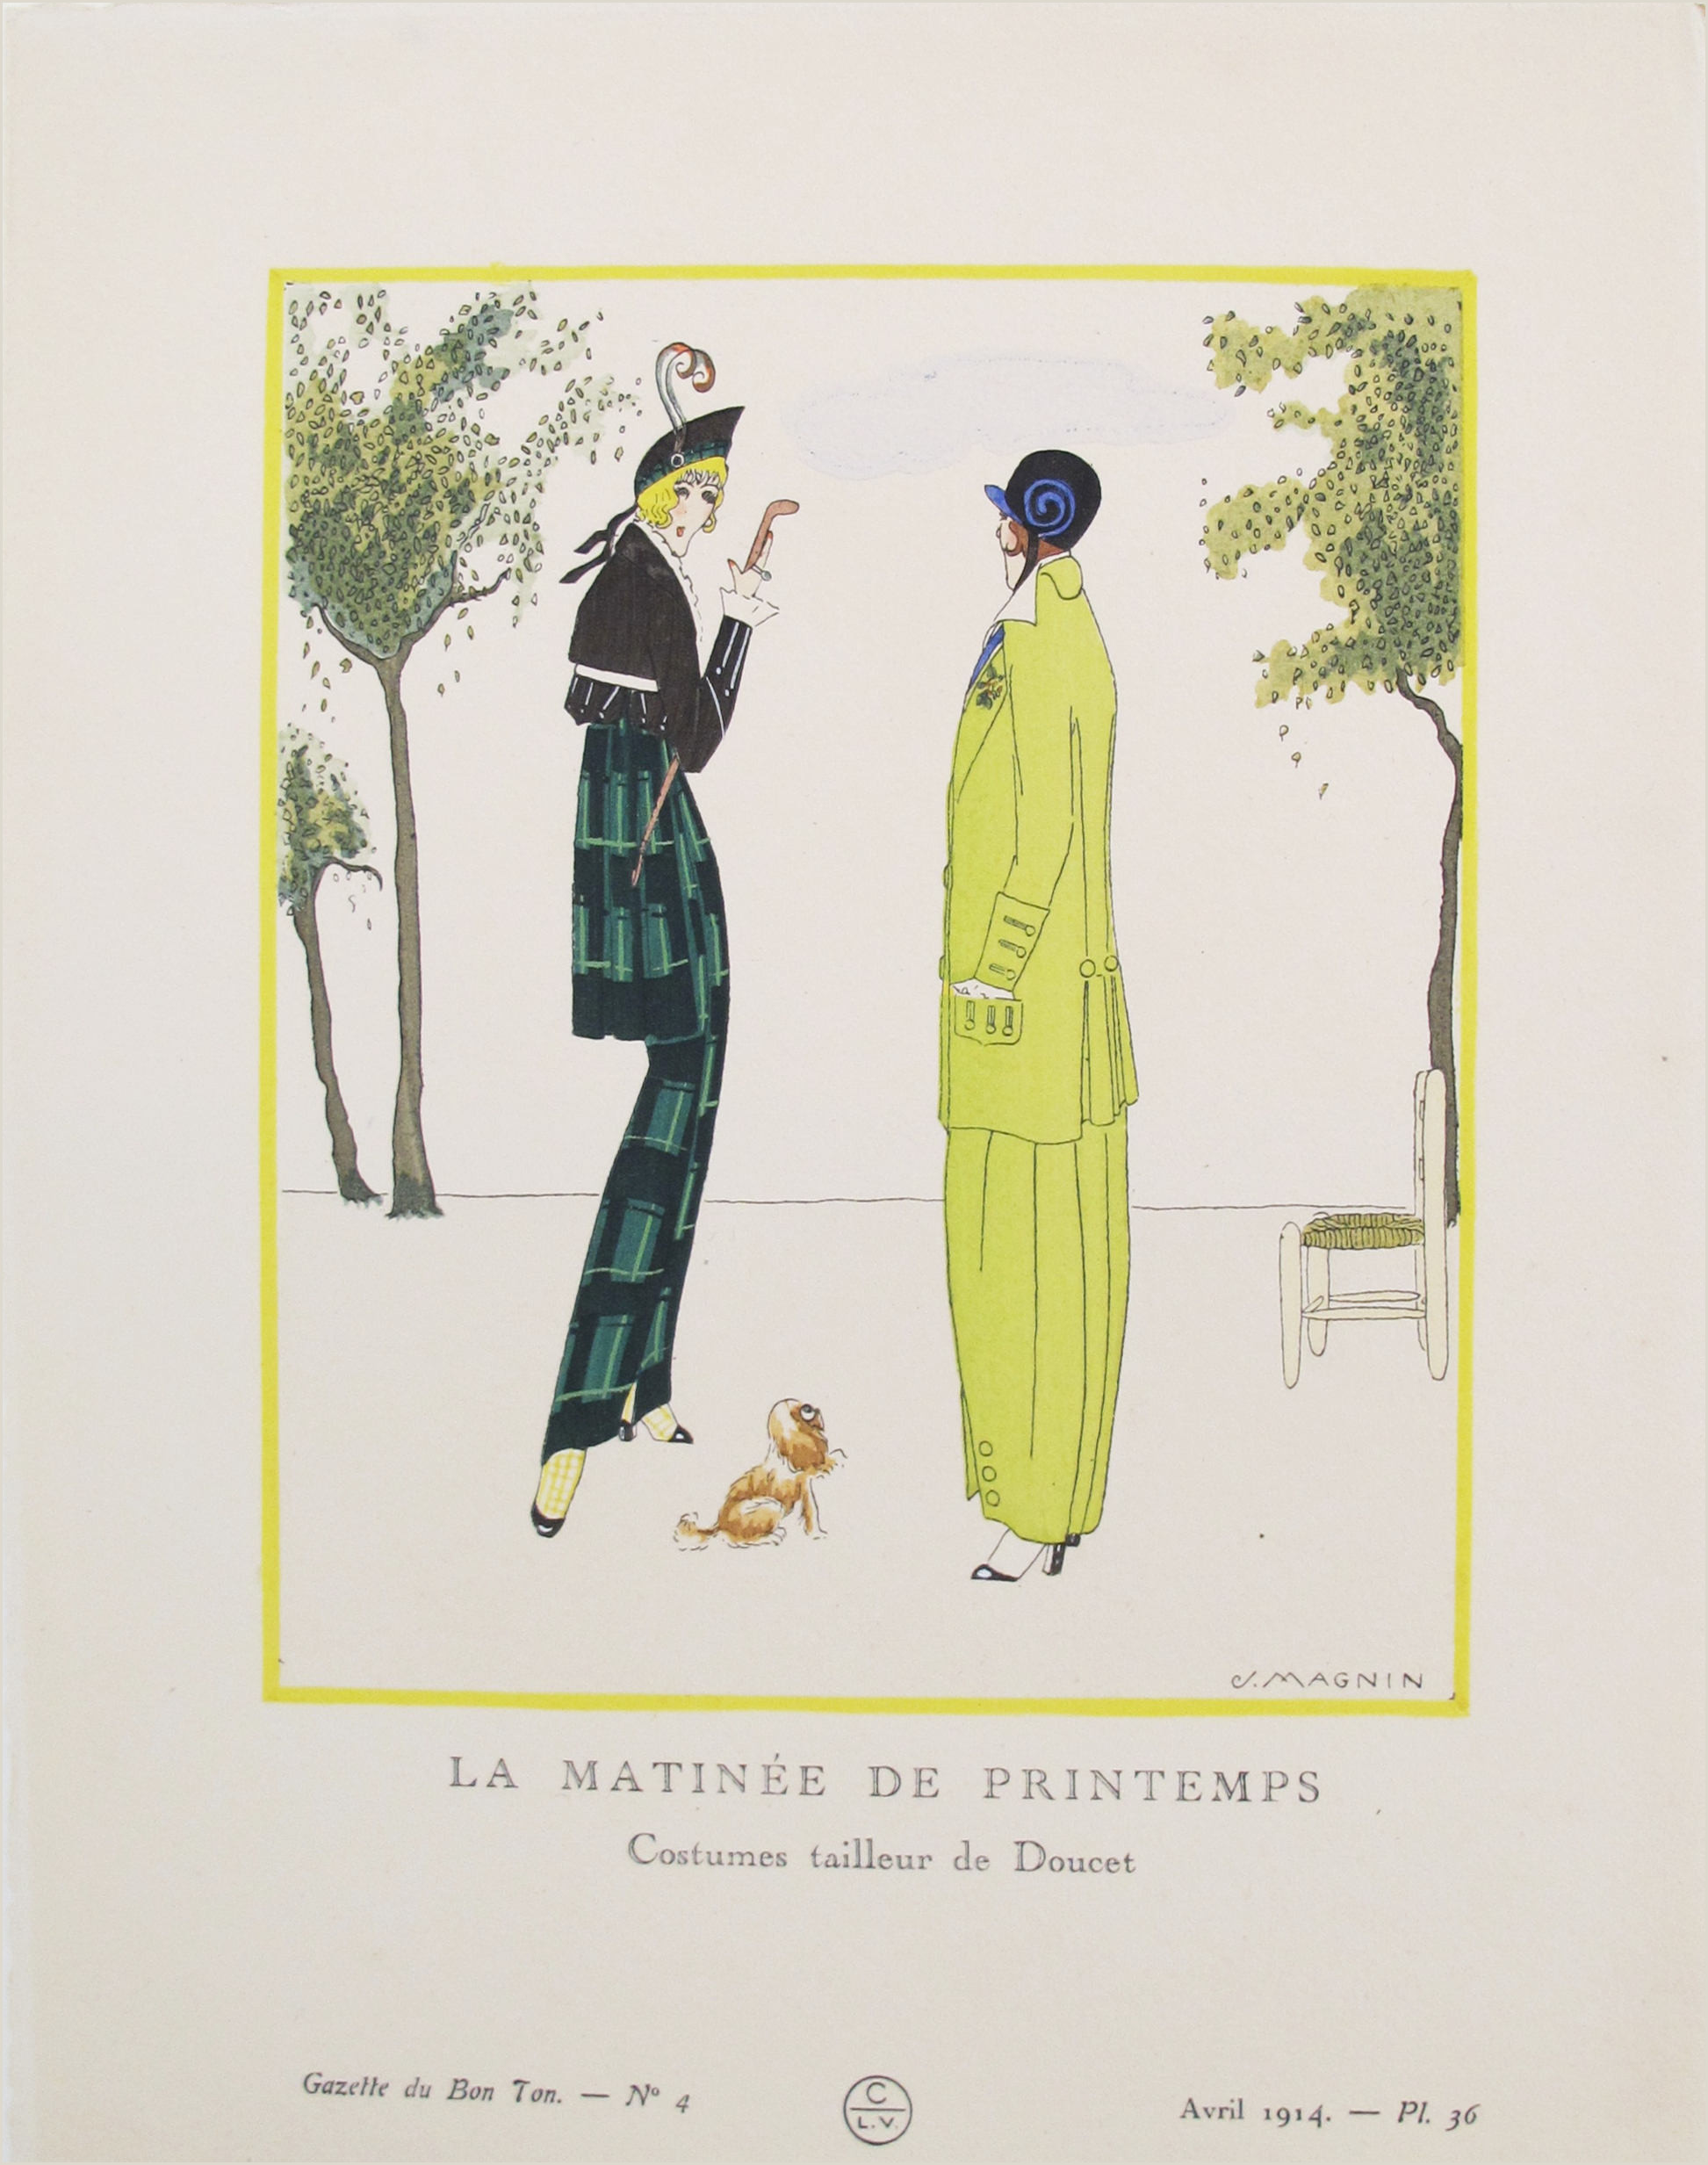 1914 Gazette du bon ton Art Deco French Fashion Pochoir Jacques Doucet Fashion by Jacques Magnin